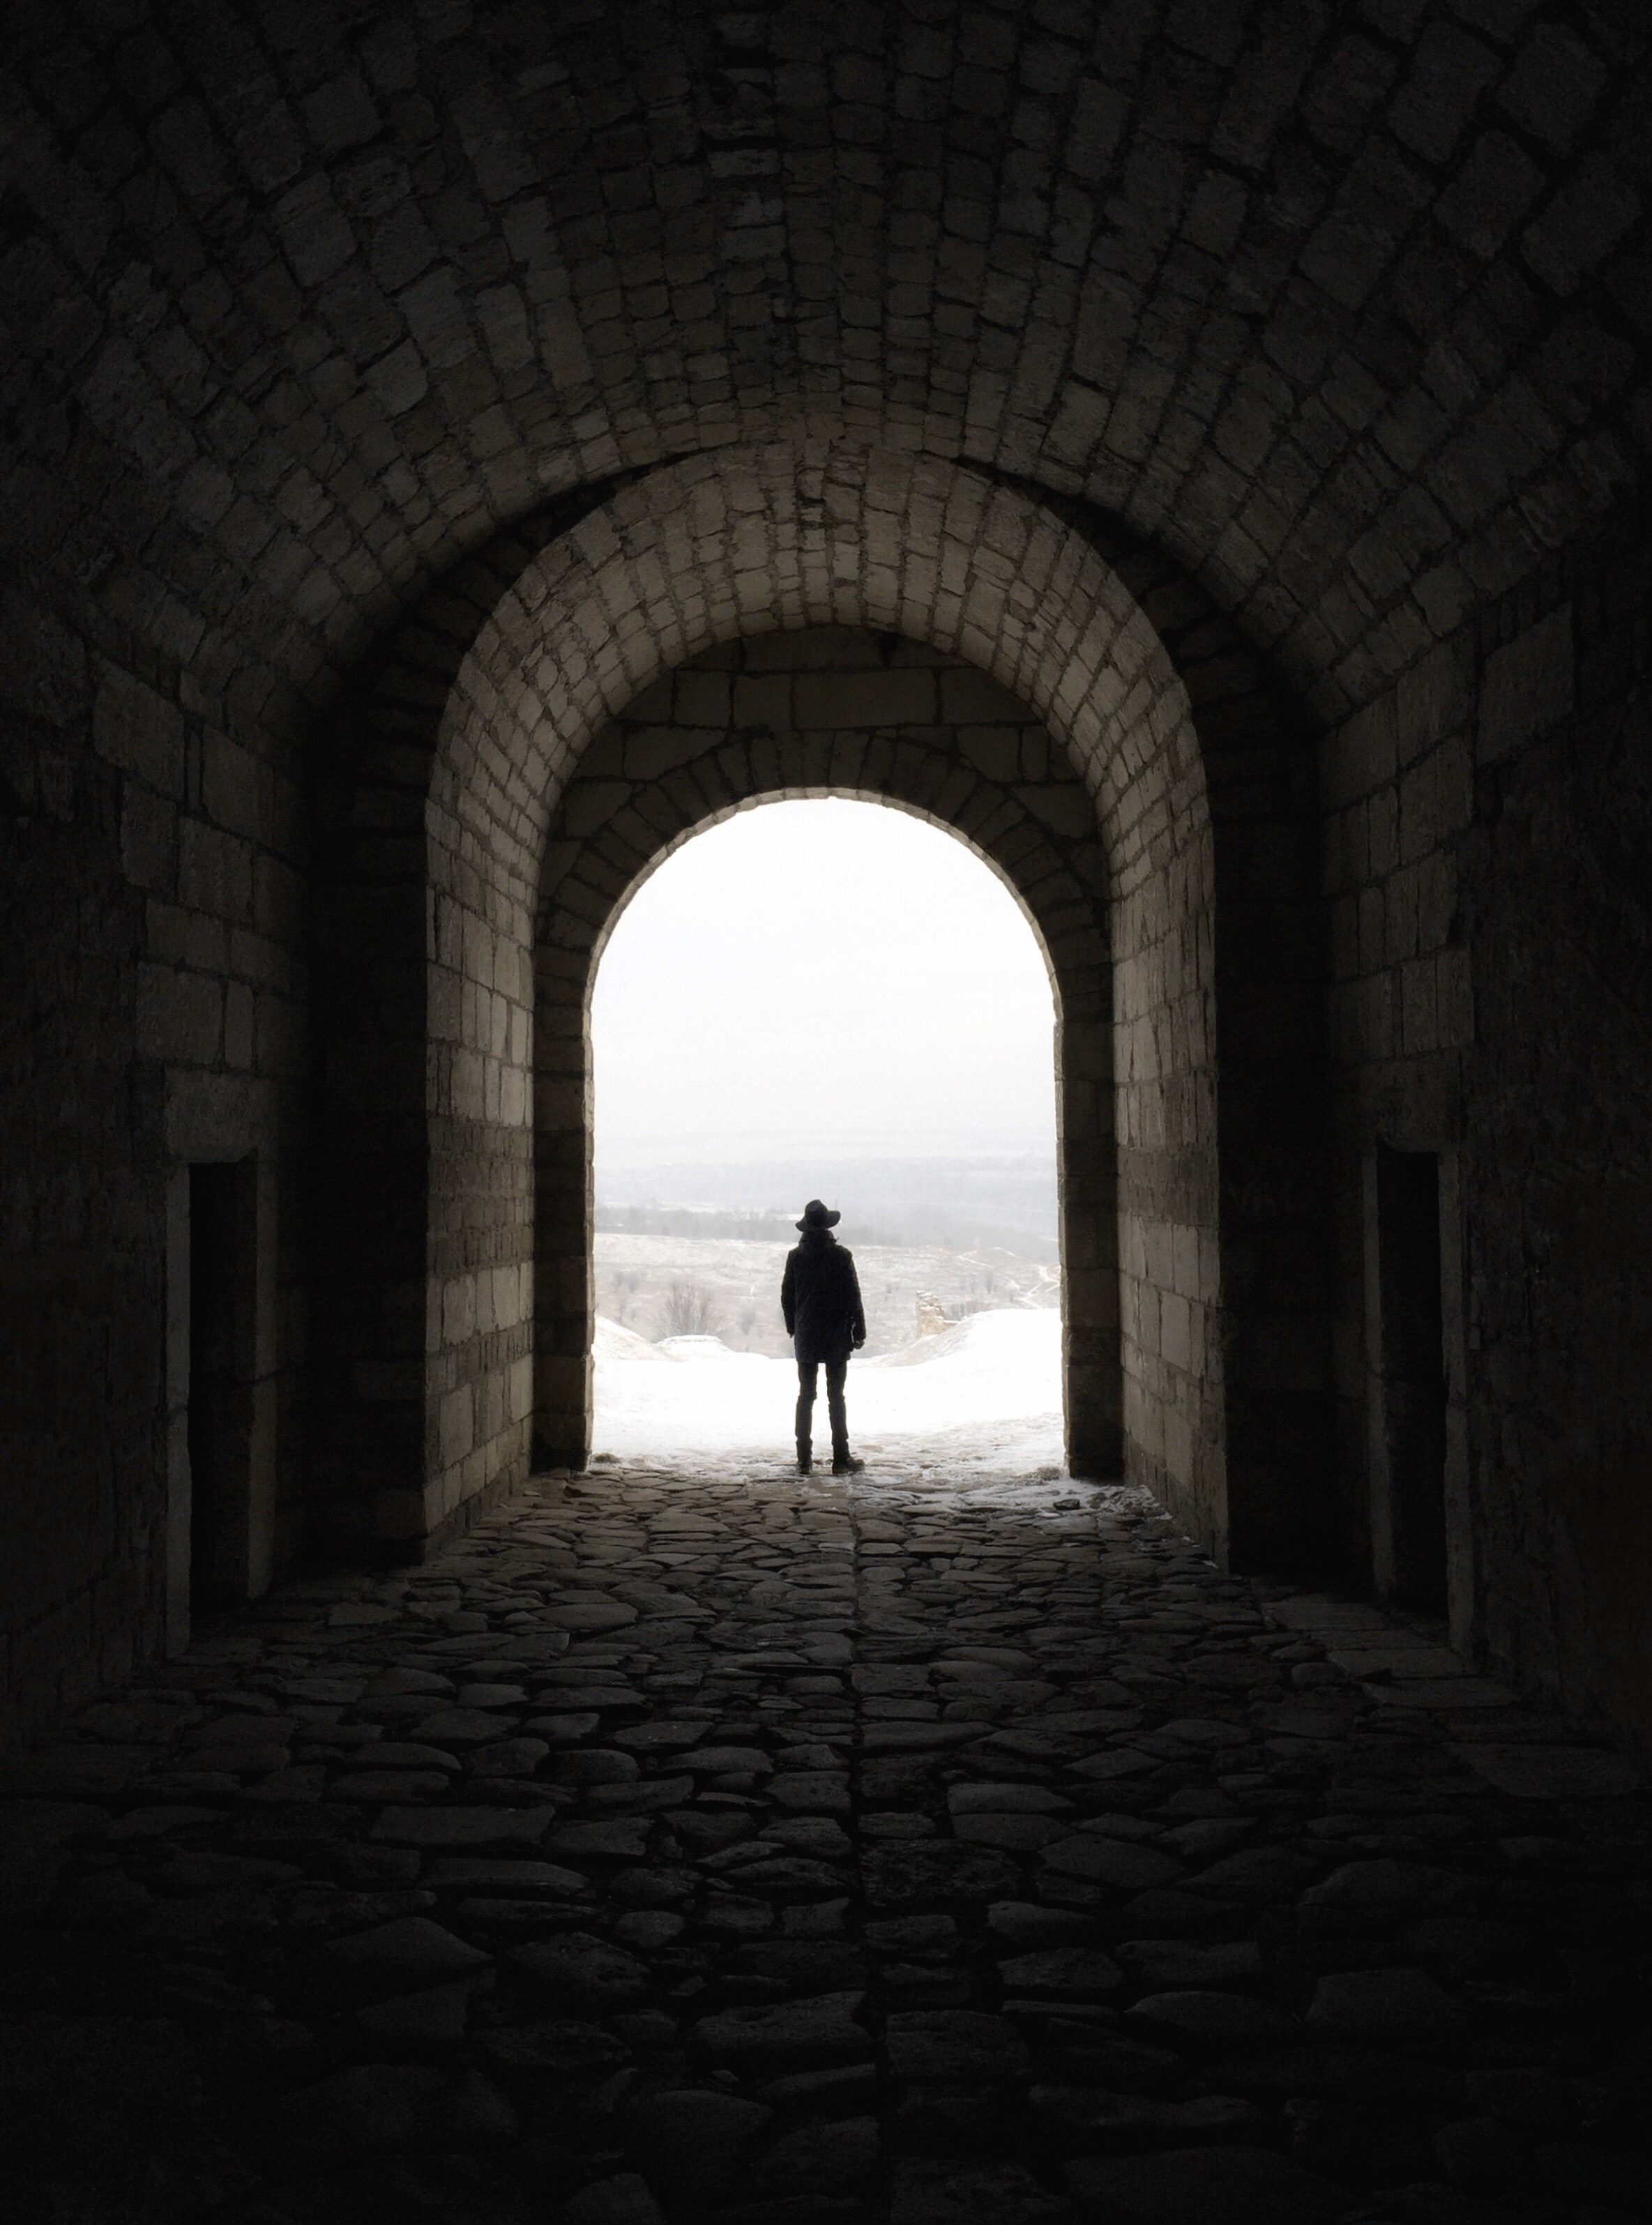 Greyscale Photography Of Man Walking On Tunnel 183 Free